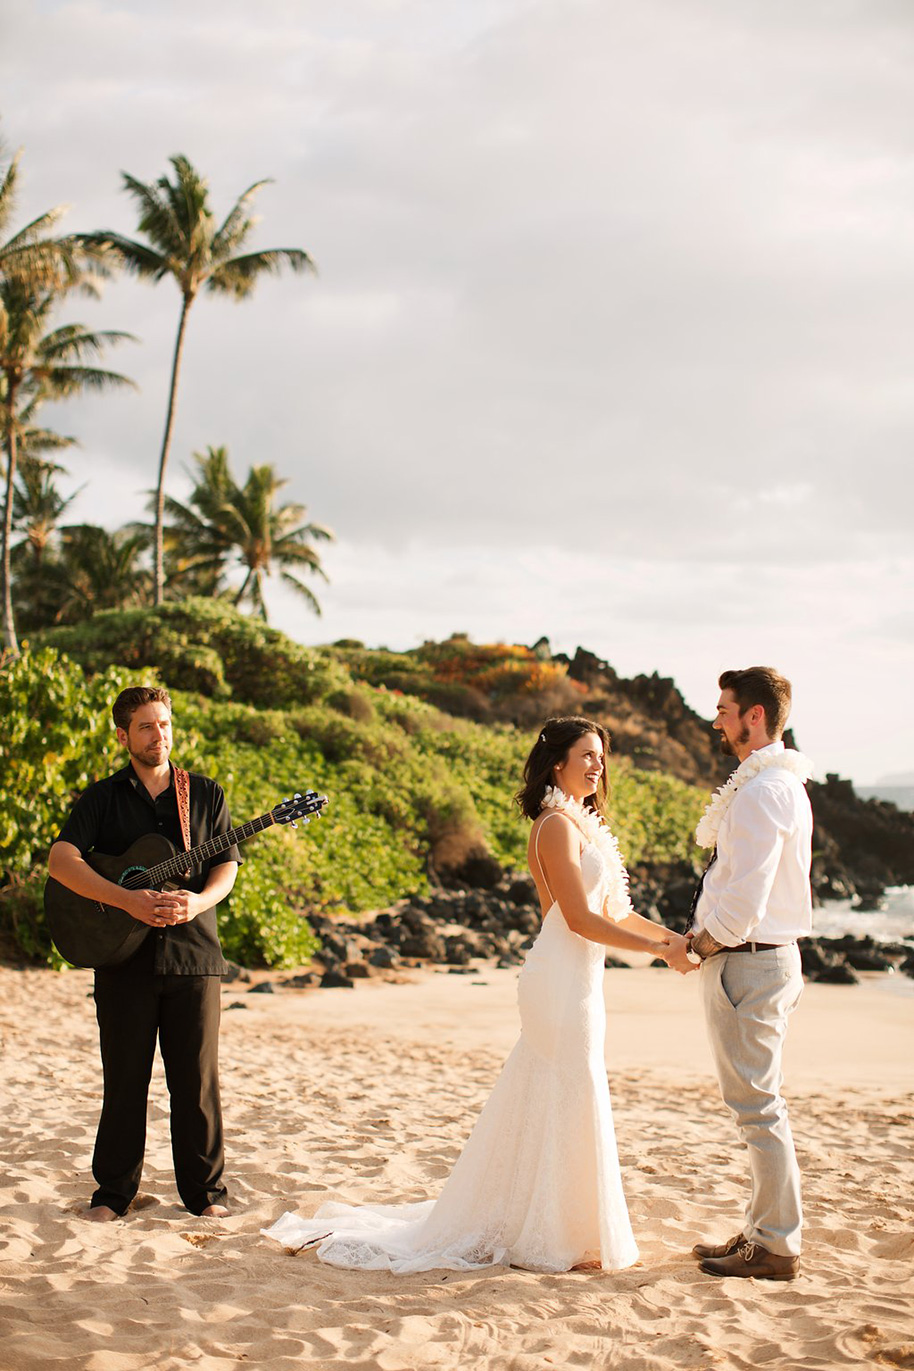 Maui-Beach-Wedding-070616-9.jpg